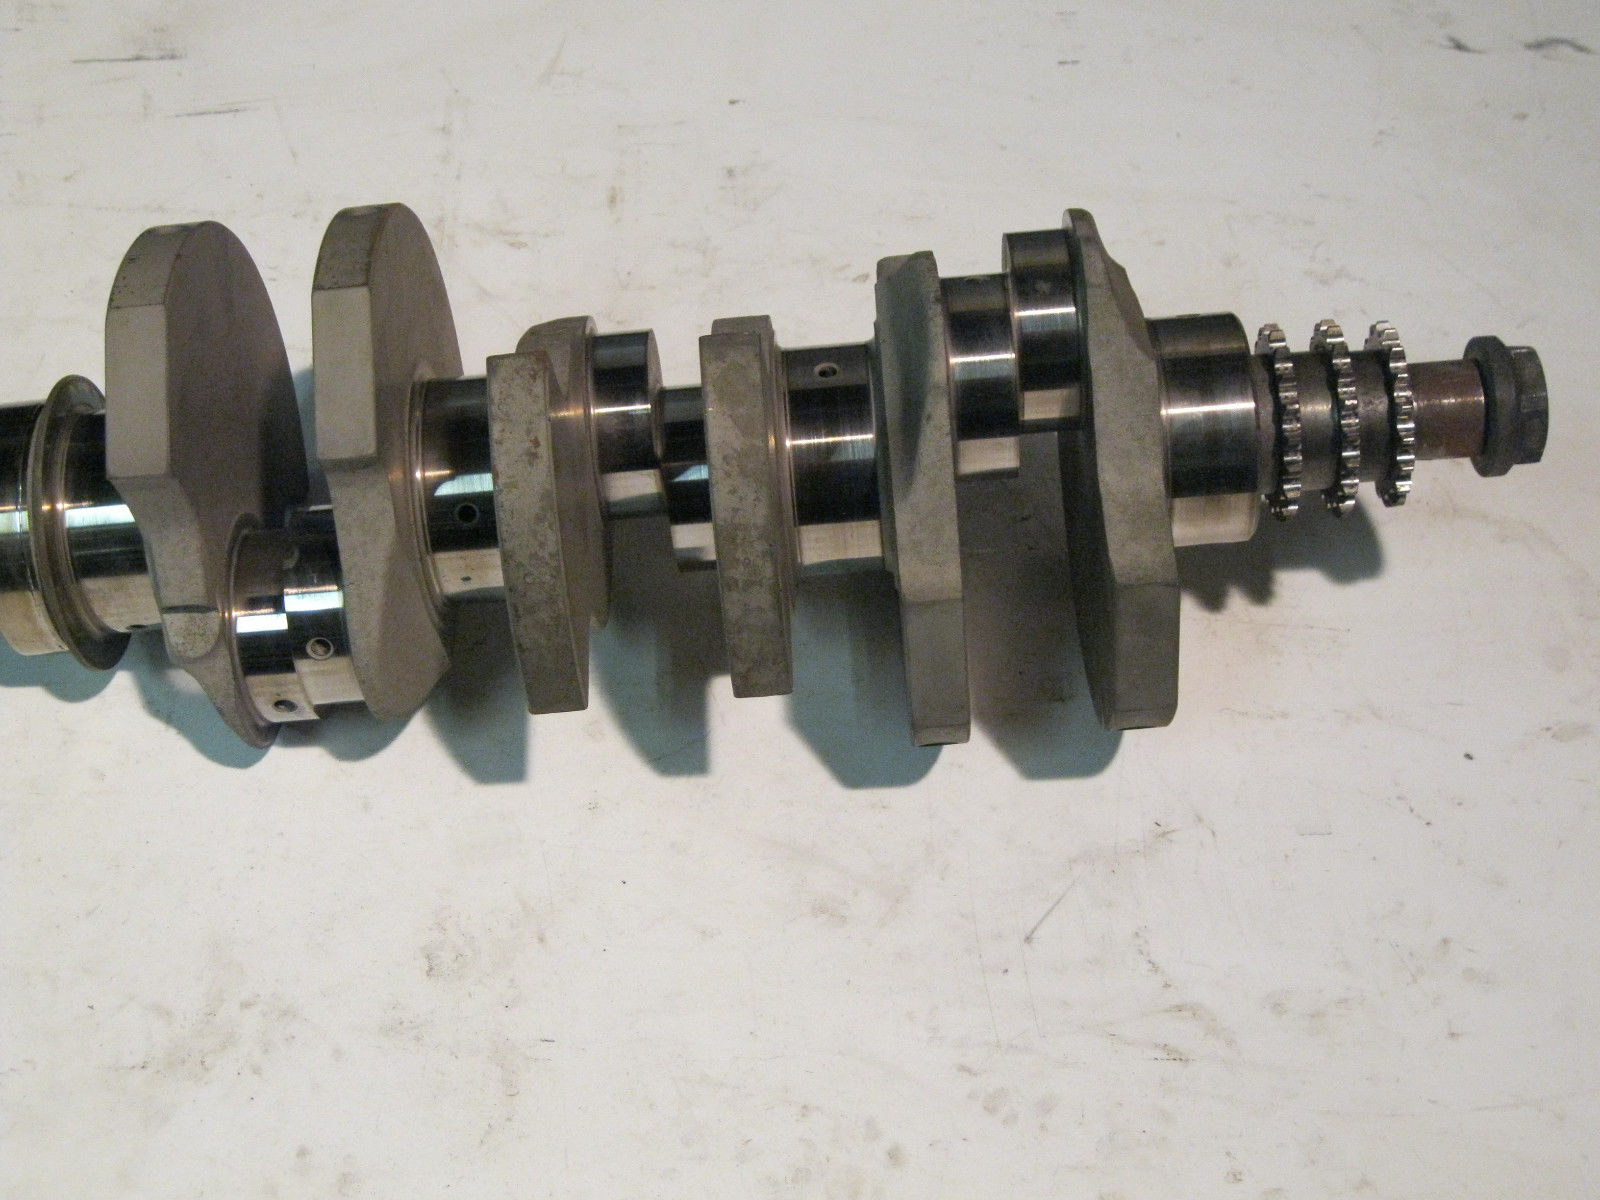 A 3.0L crank. Notice that he journals are split, thus allowing for even firing (photo from eBay).